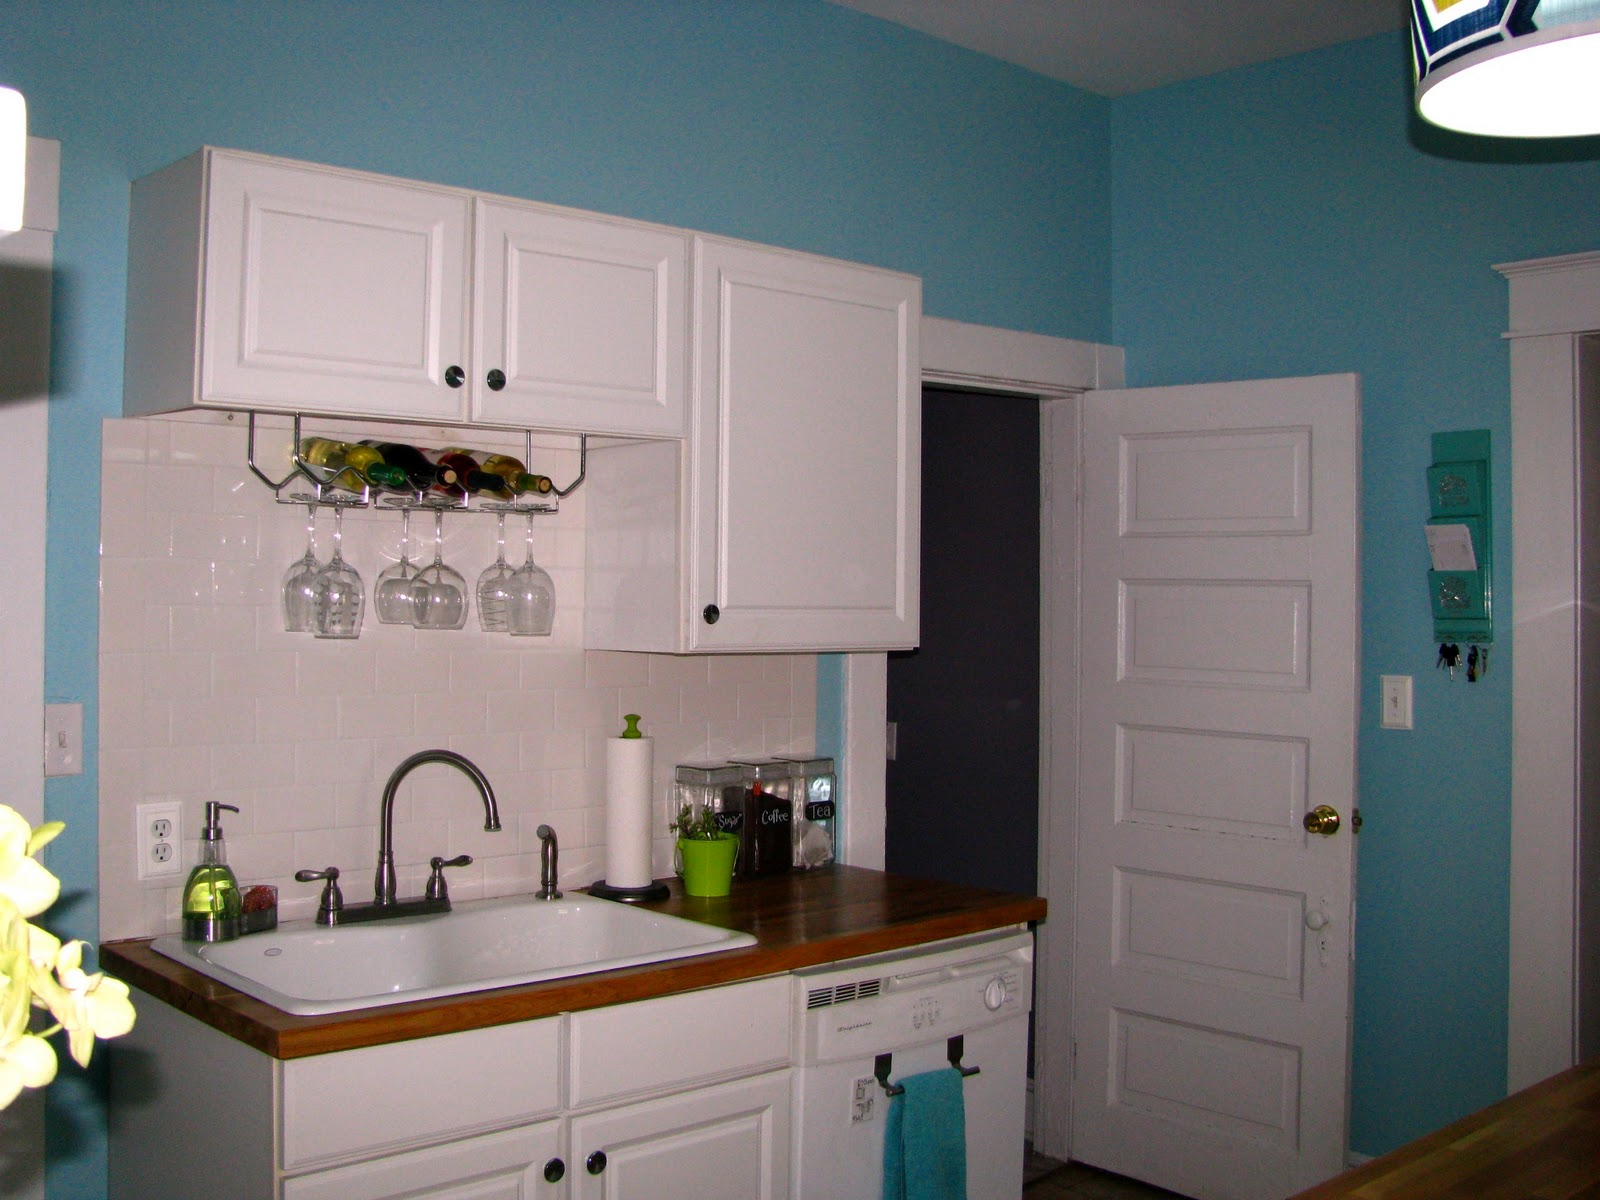 Remodelaholic | Kitchen Remodel on the Cheap!